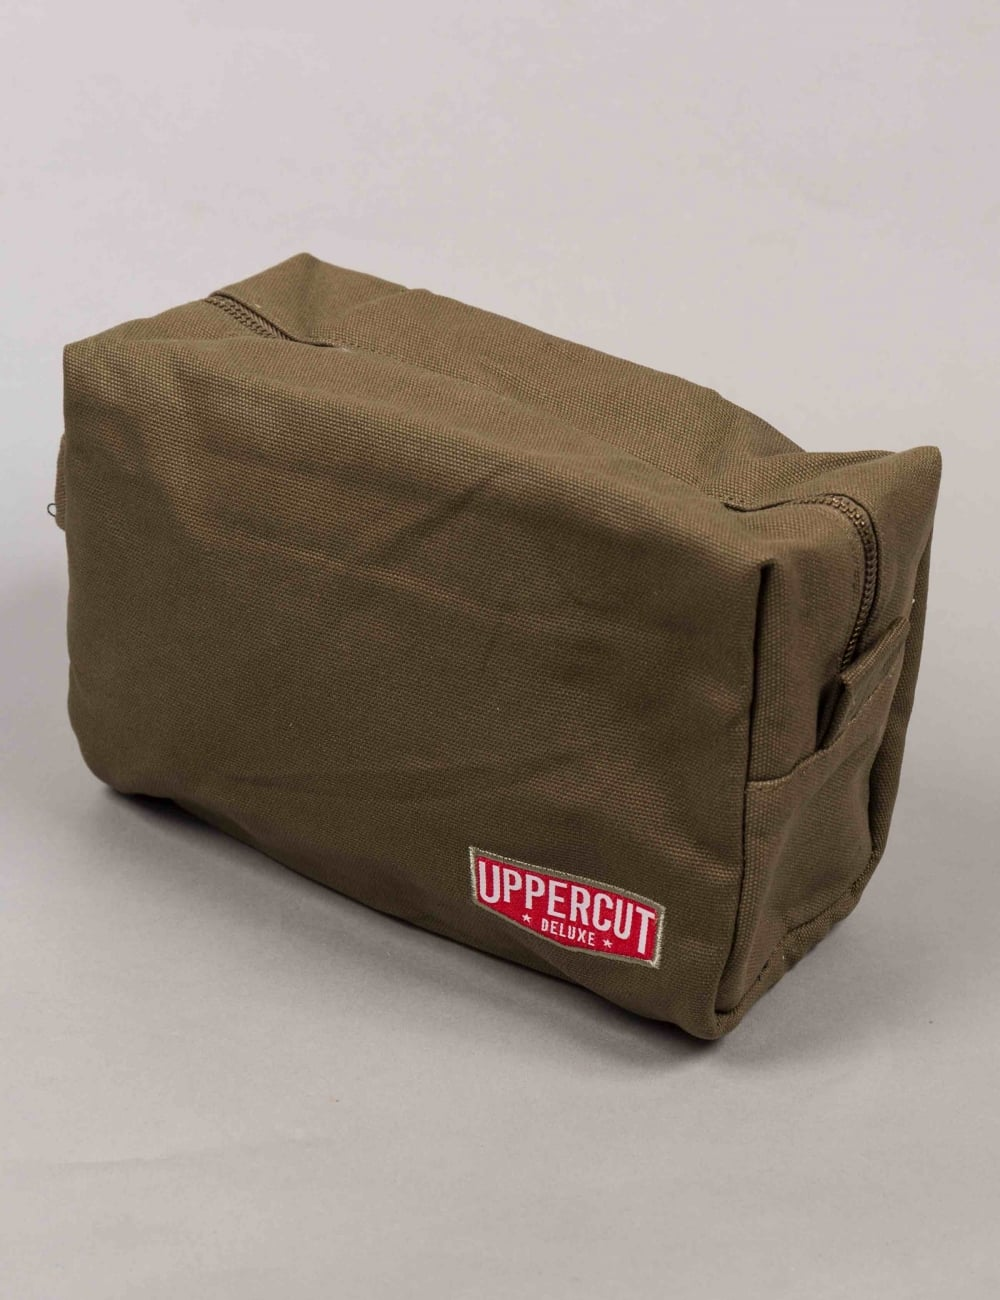 77fe2f0e7bc76 Uppercut Deluxe Canvas Wash Bag - Army Green - Mens Grooming from ...